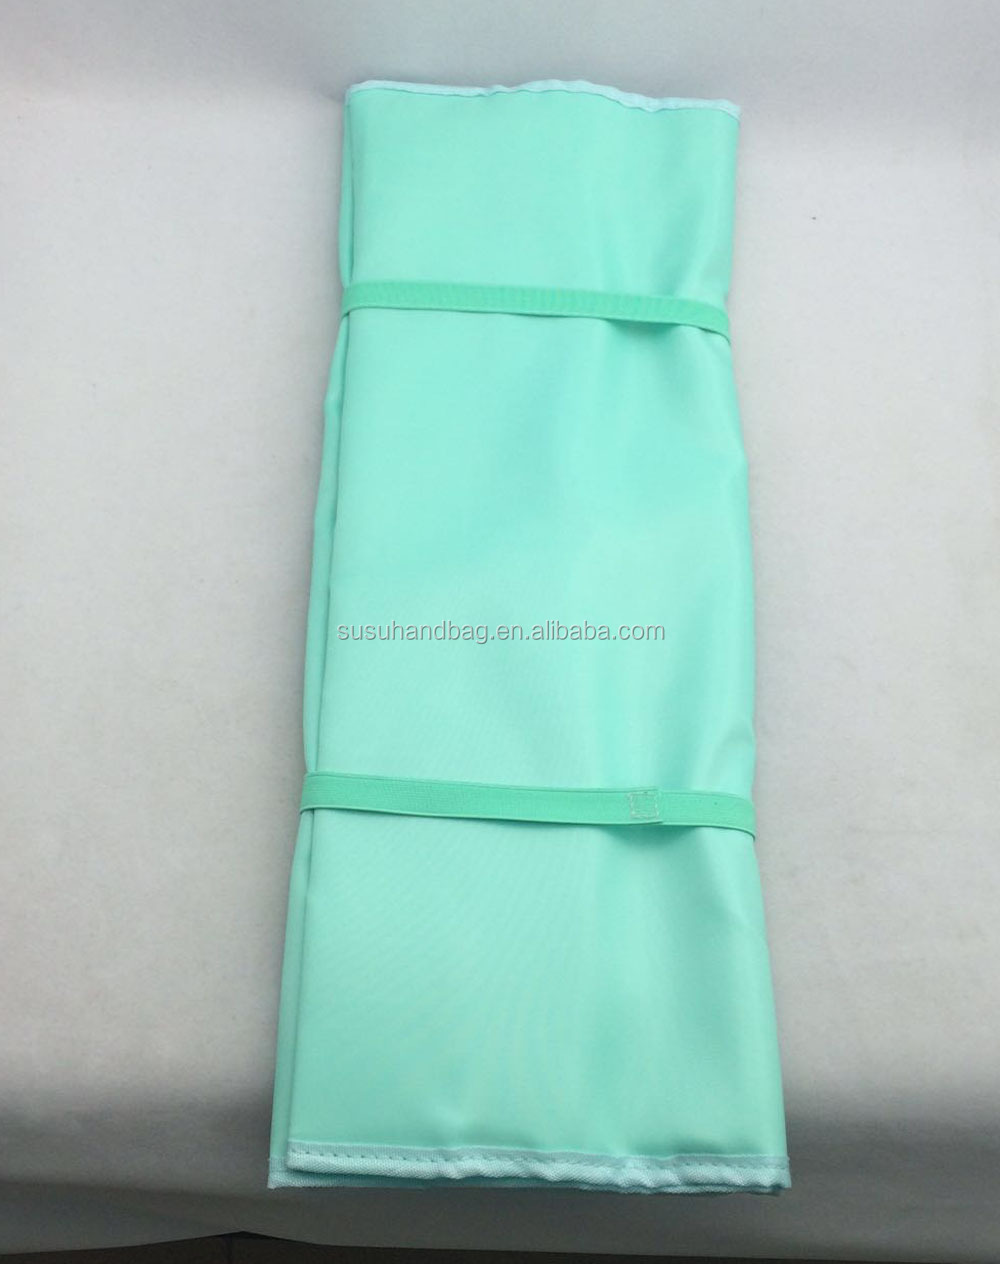 Blue Polyester Hanging Jewelry Bag Roll With Small Clear Zip Pockets